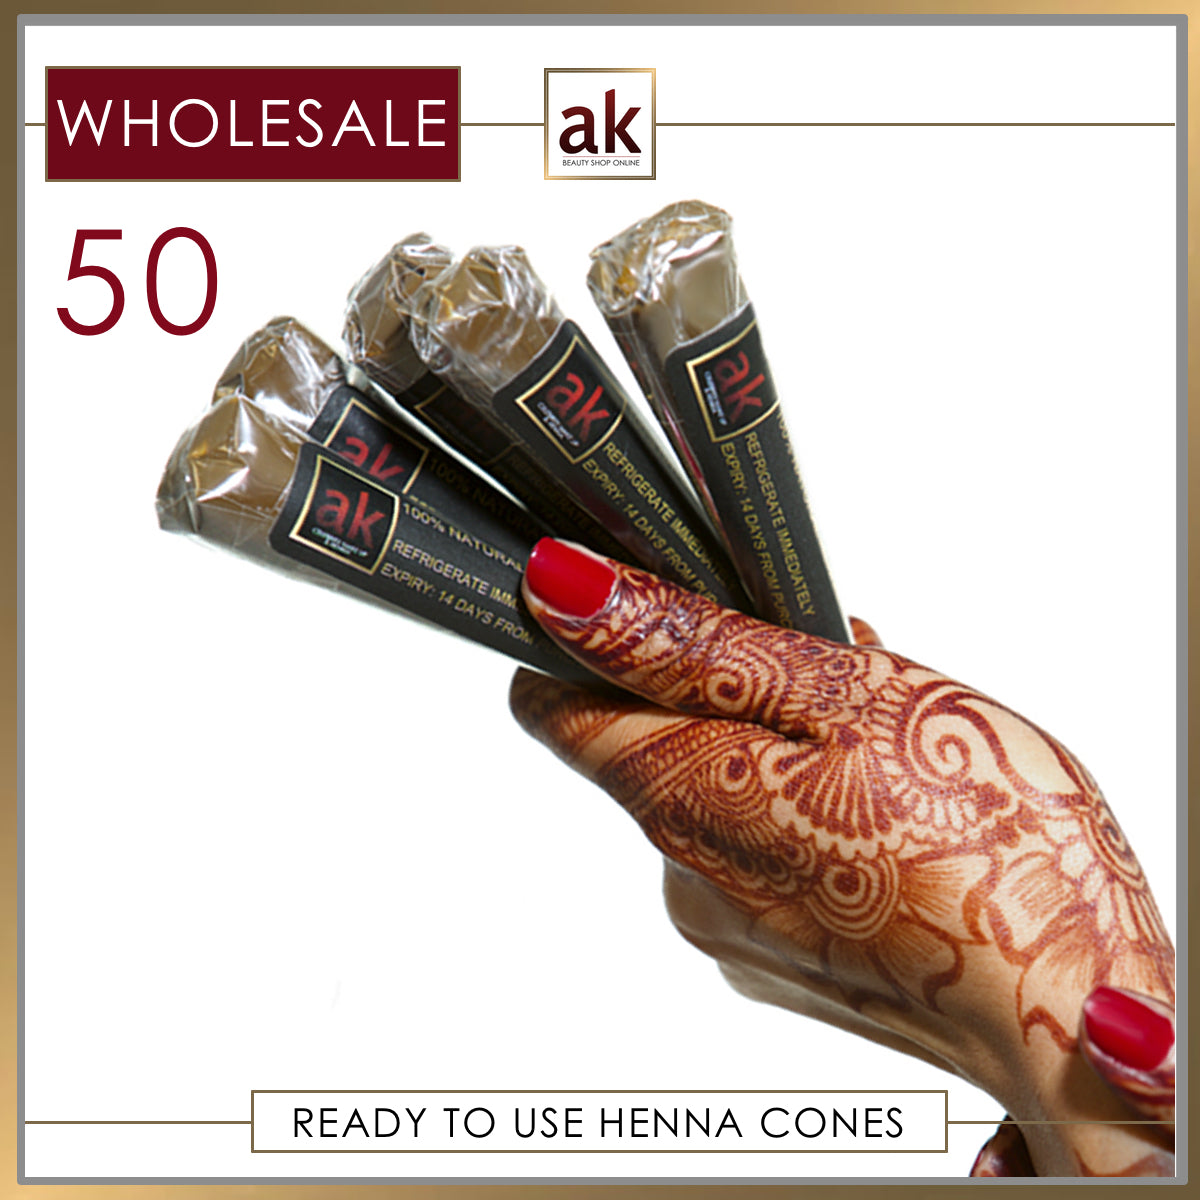 50 Ready To Use Henna Cones - Ash Kumar Products UK